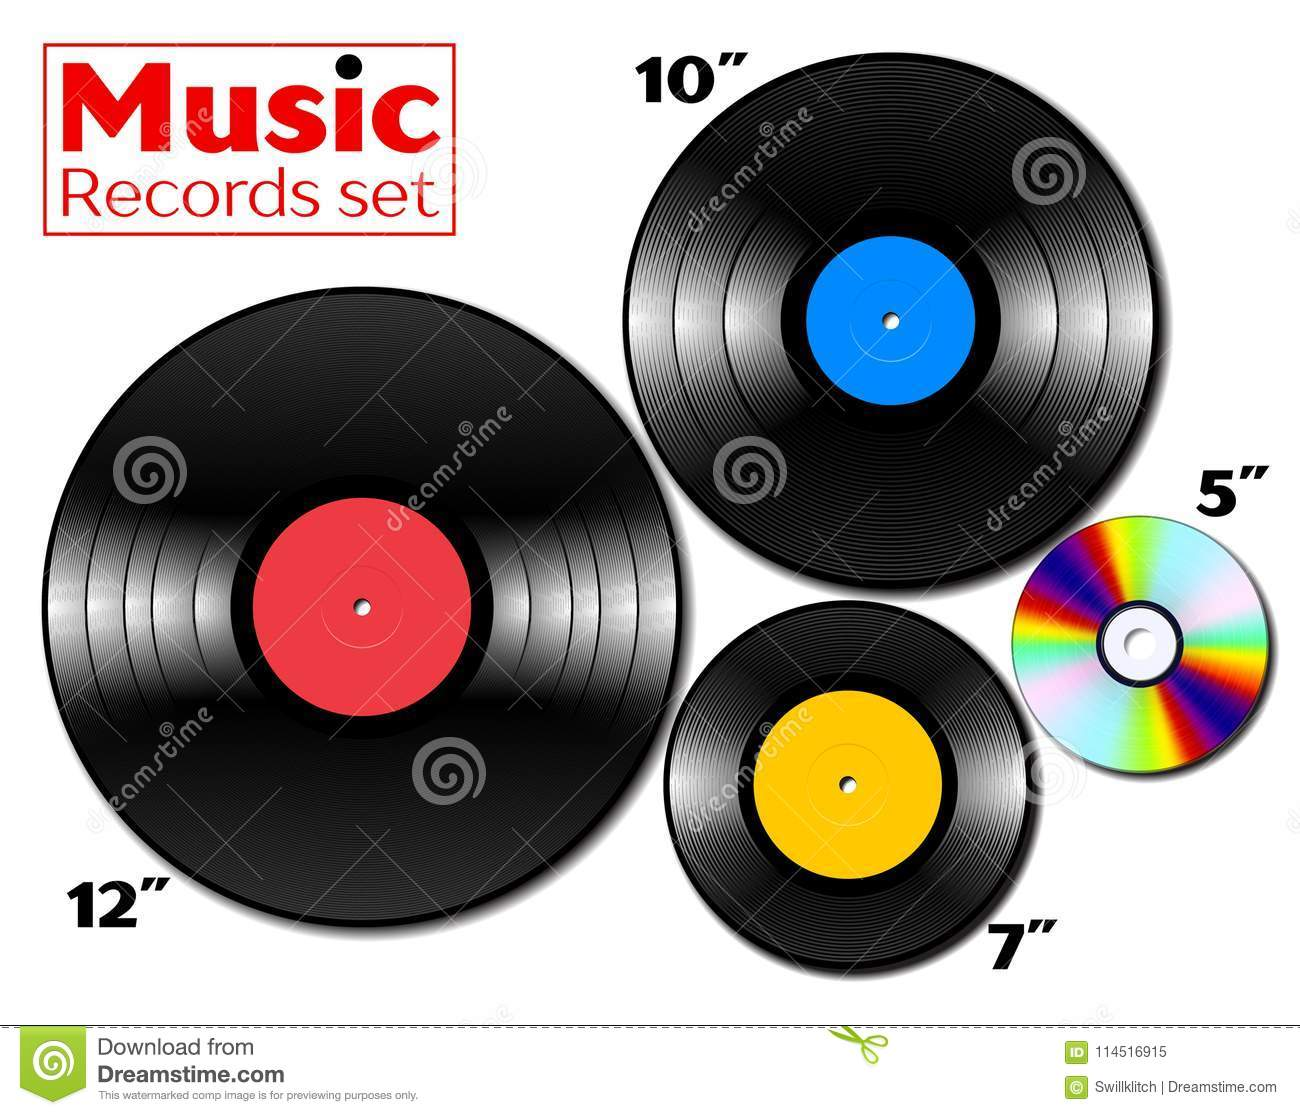 The Music Ep Vinyl Lp And Ep Collection With Various Sizes Of Music Media Stock